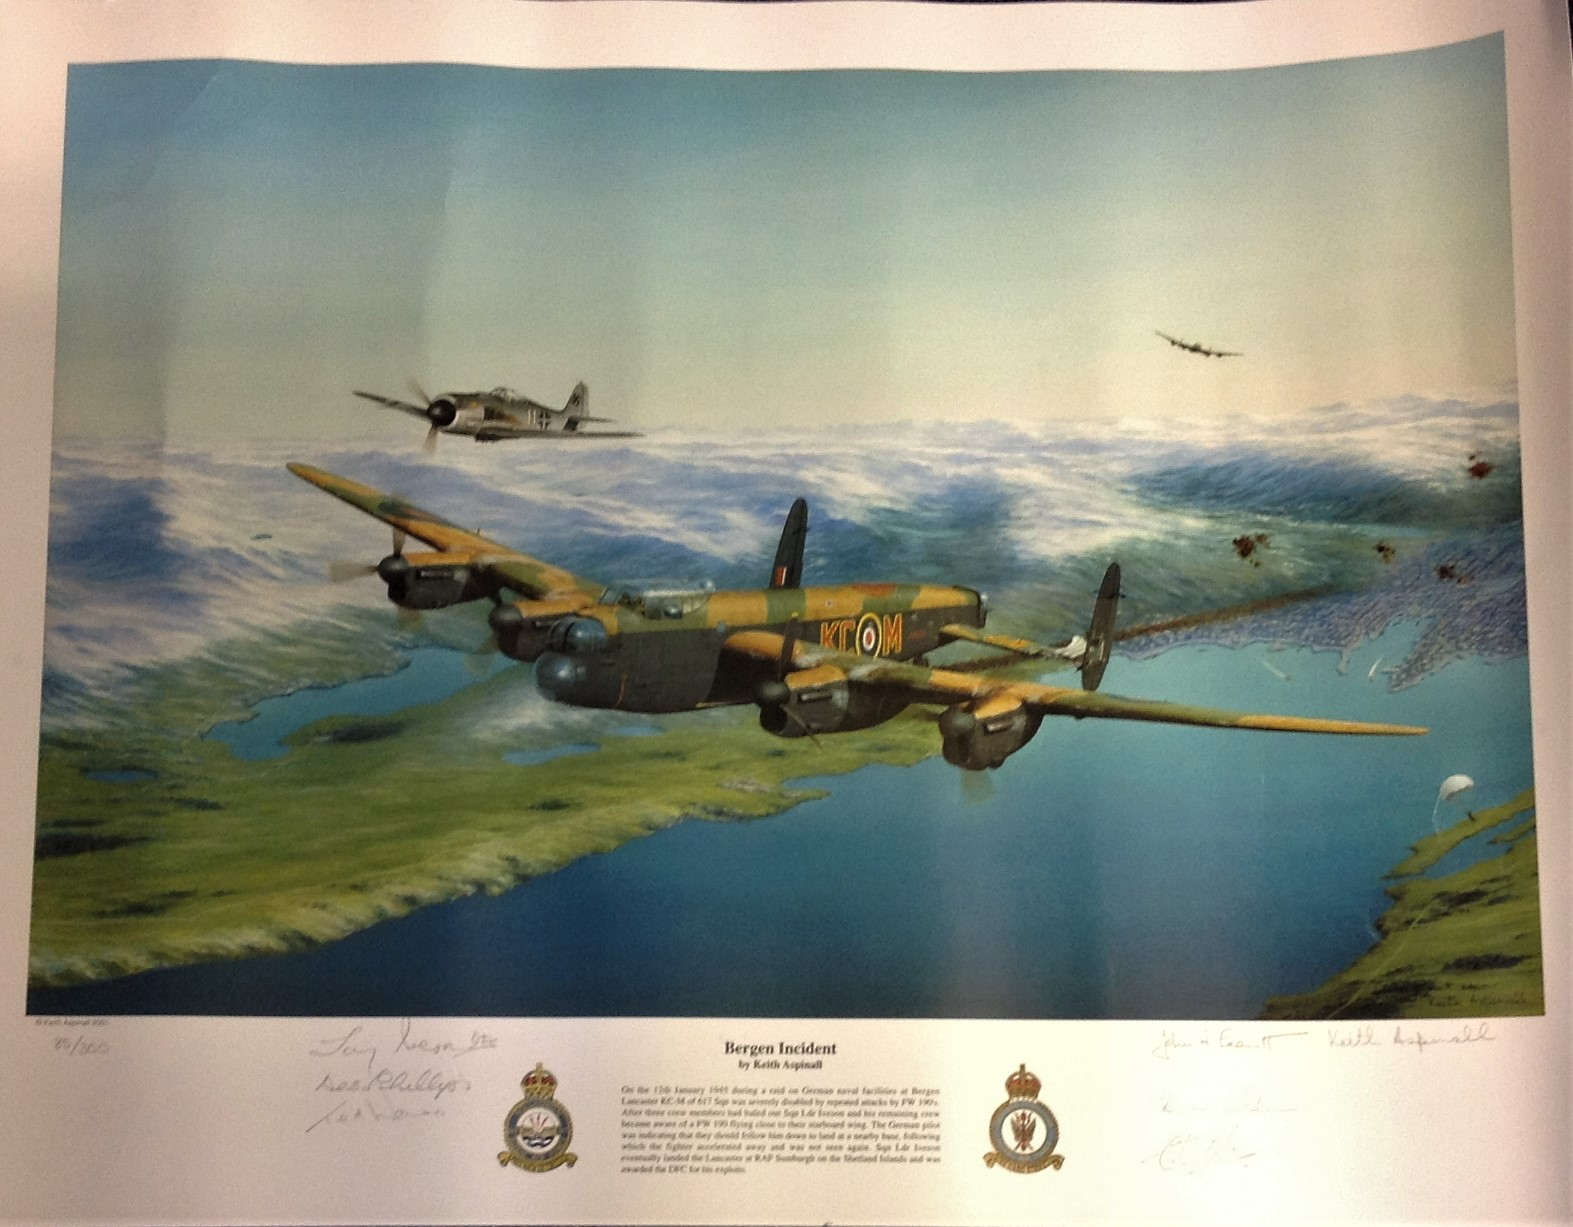 Lot 59 - World War Two print 22x17 titled Bergen Incident by the artist Keith Aspinall signed in pencil by